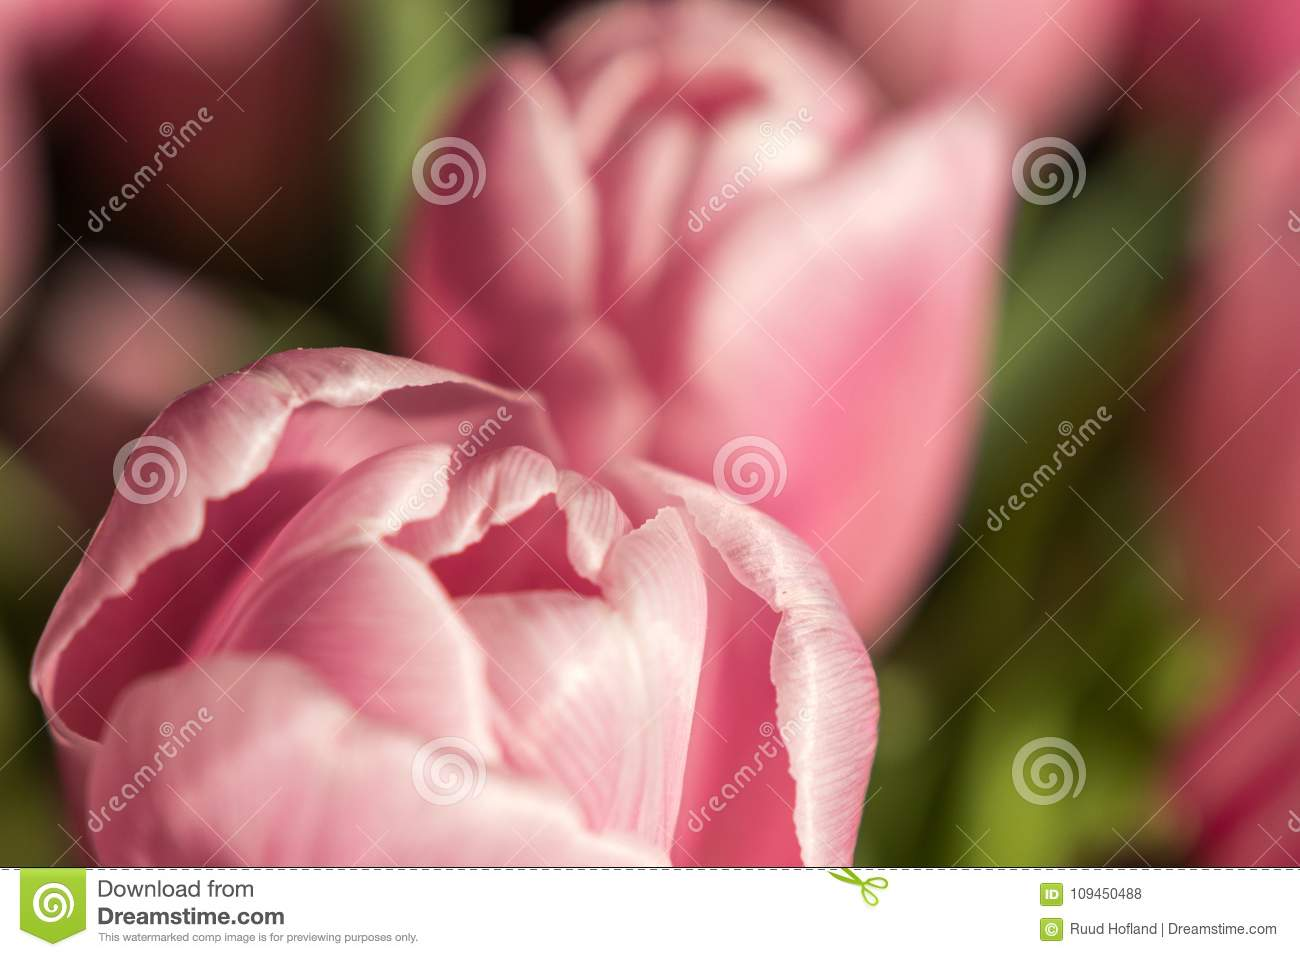 Tulips from holland valentine tulips stock photo image of pink valentine tulips form holland pink colorful layout or springtime greeting card for mothers day birthday m4hsunfo